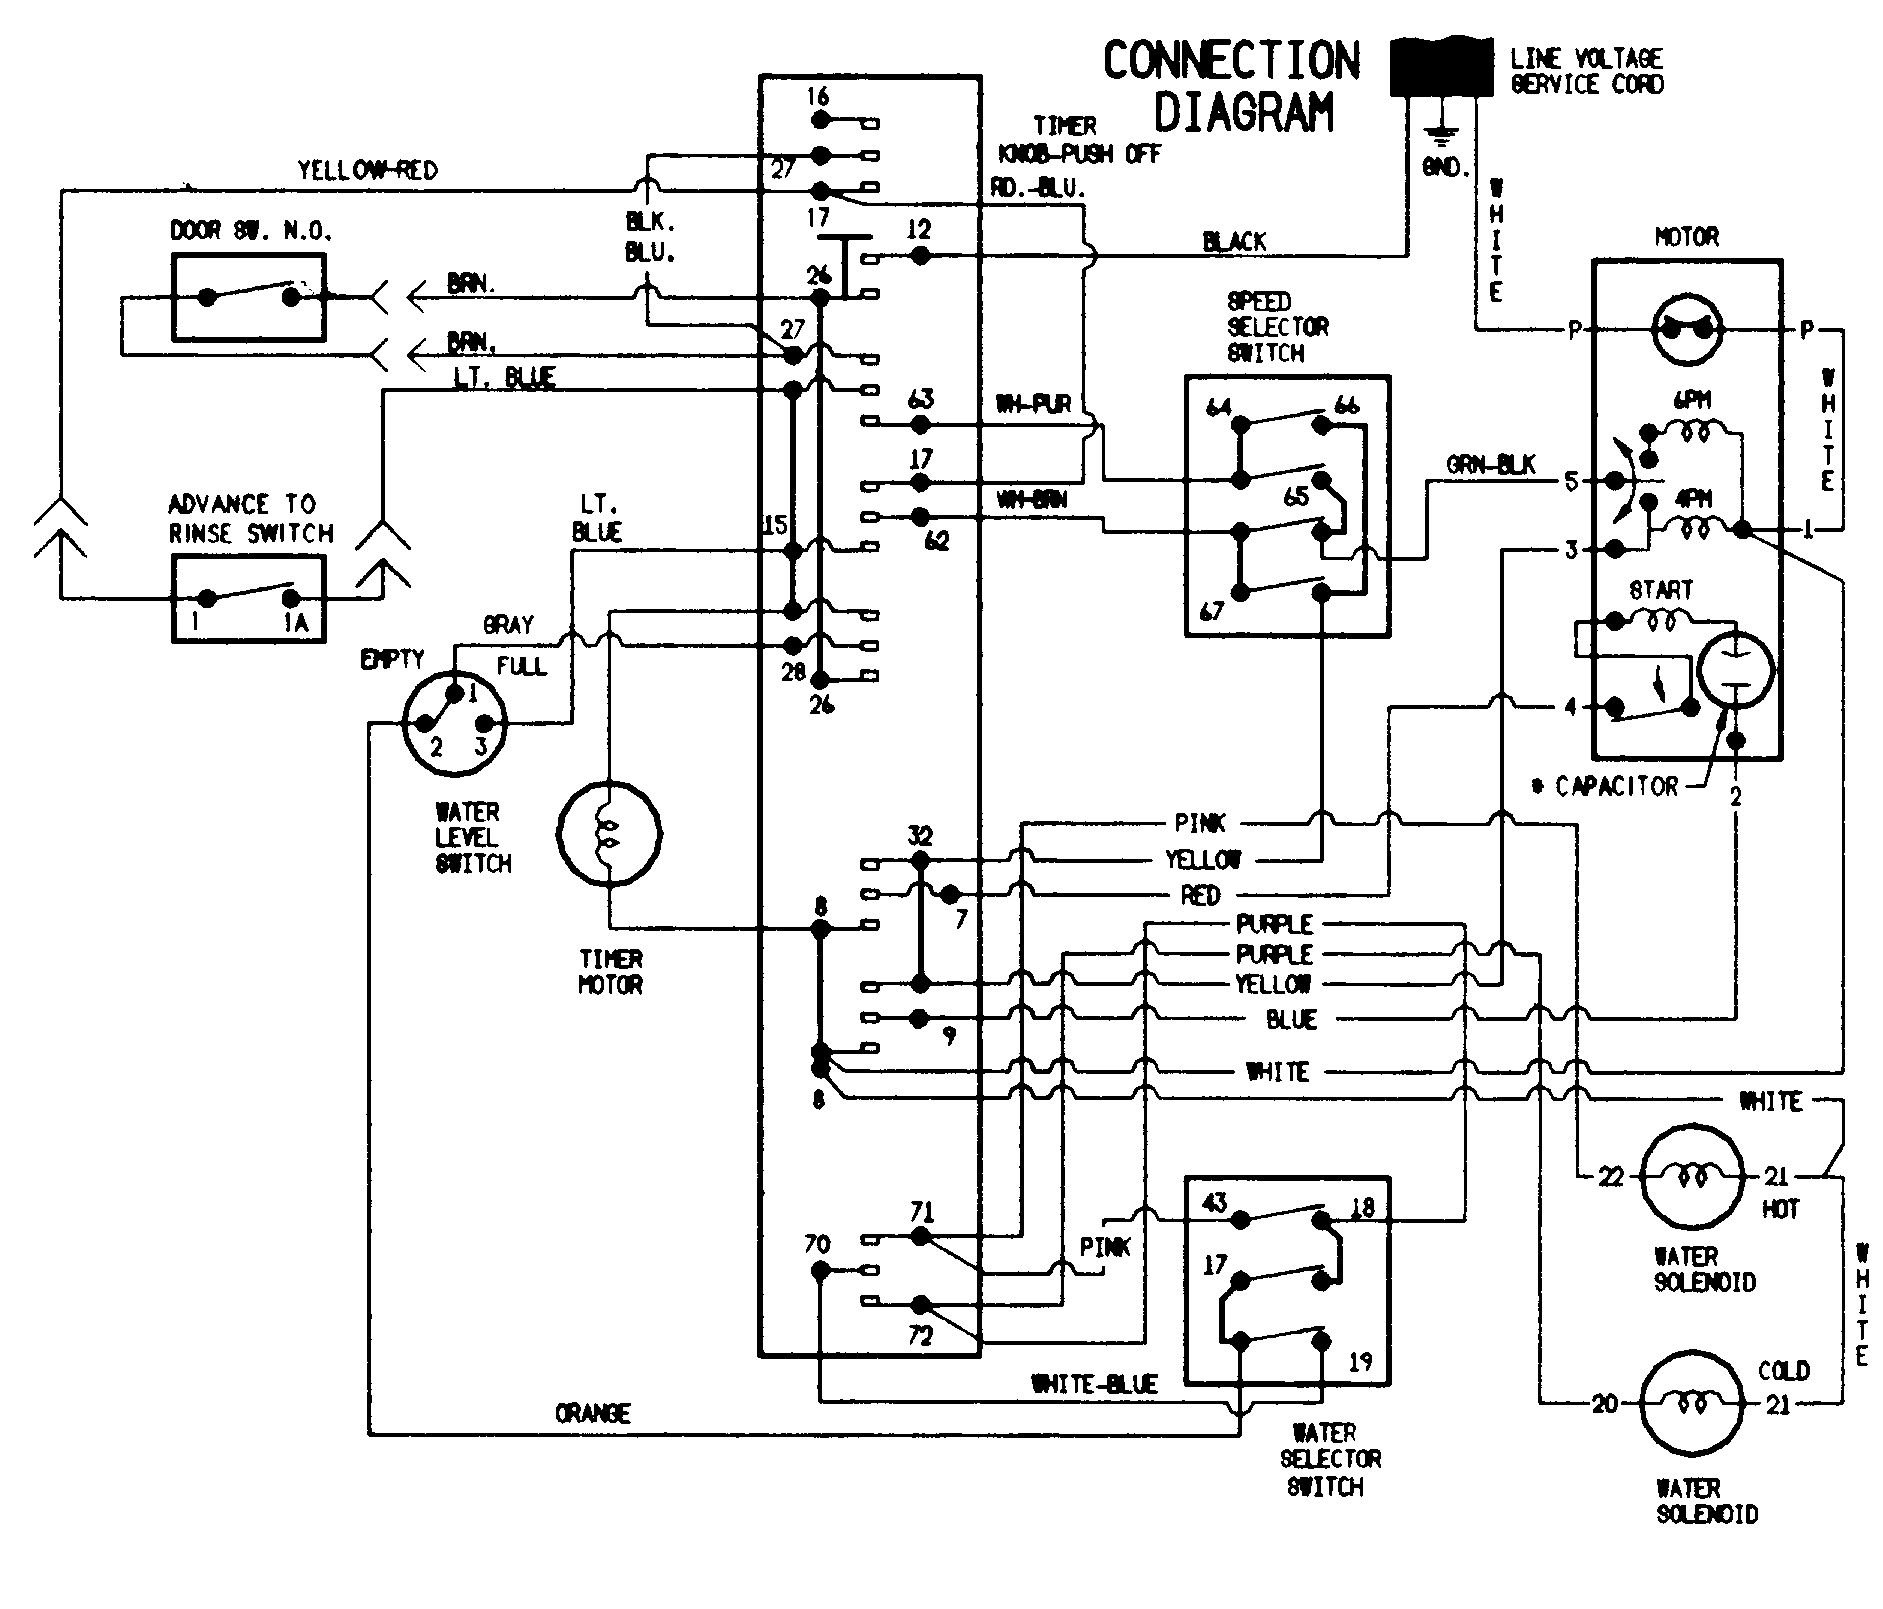 Washing Machine Electrical Schematics also Appliance likewise Belt Drive Washer Help likewise Whirlpool Terminal Wire Kit 279318 Ap3133484 also 5h1p2 Having Problem Maytag Bravos Dryer Not. on whirlpool gas dryer wiring schematic